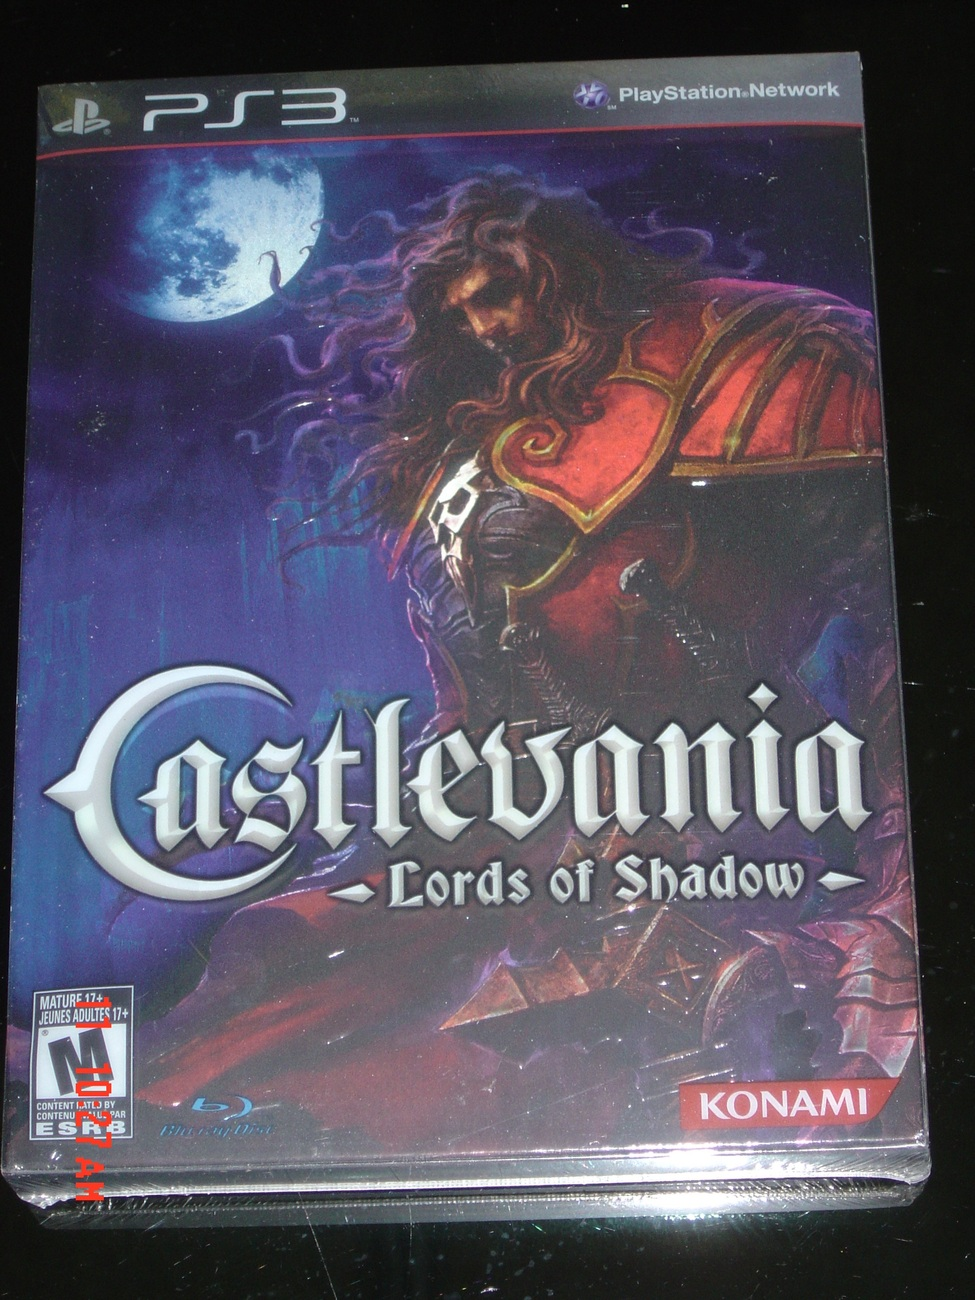 CASTLEVANIA LORDS OF SHADOW  LIMITED EDITION